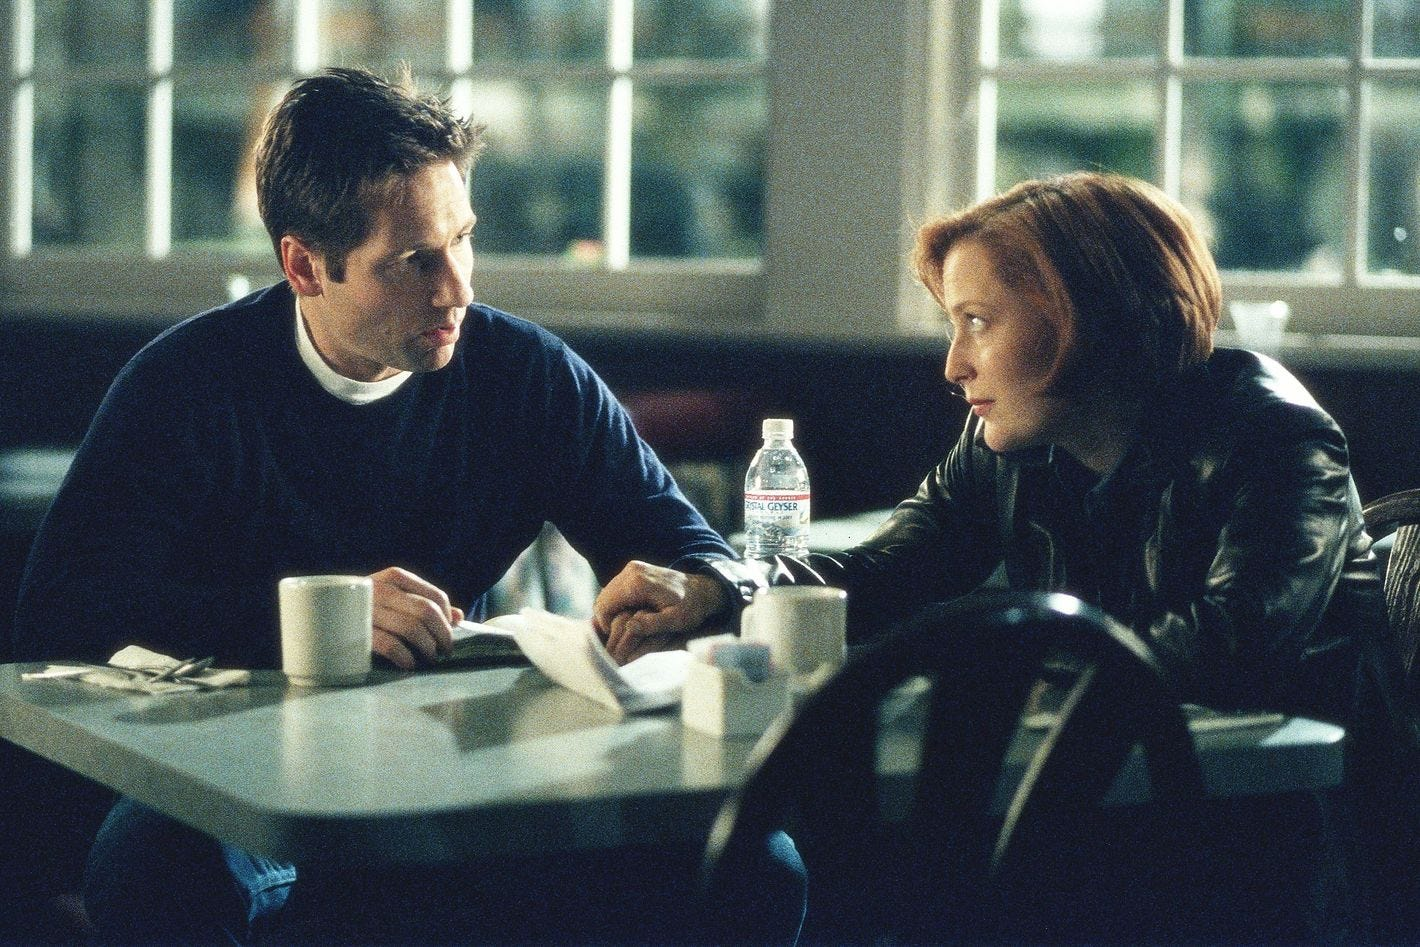 A Brief History of Mulder and Scully's Once-Controversial Romance